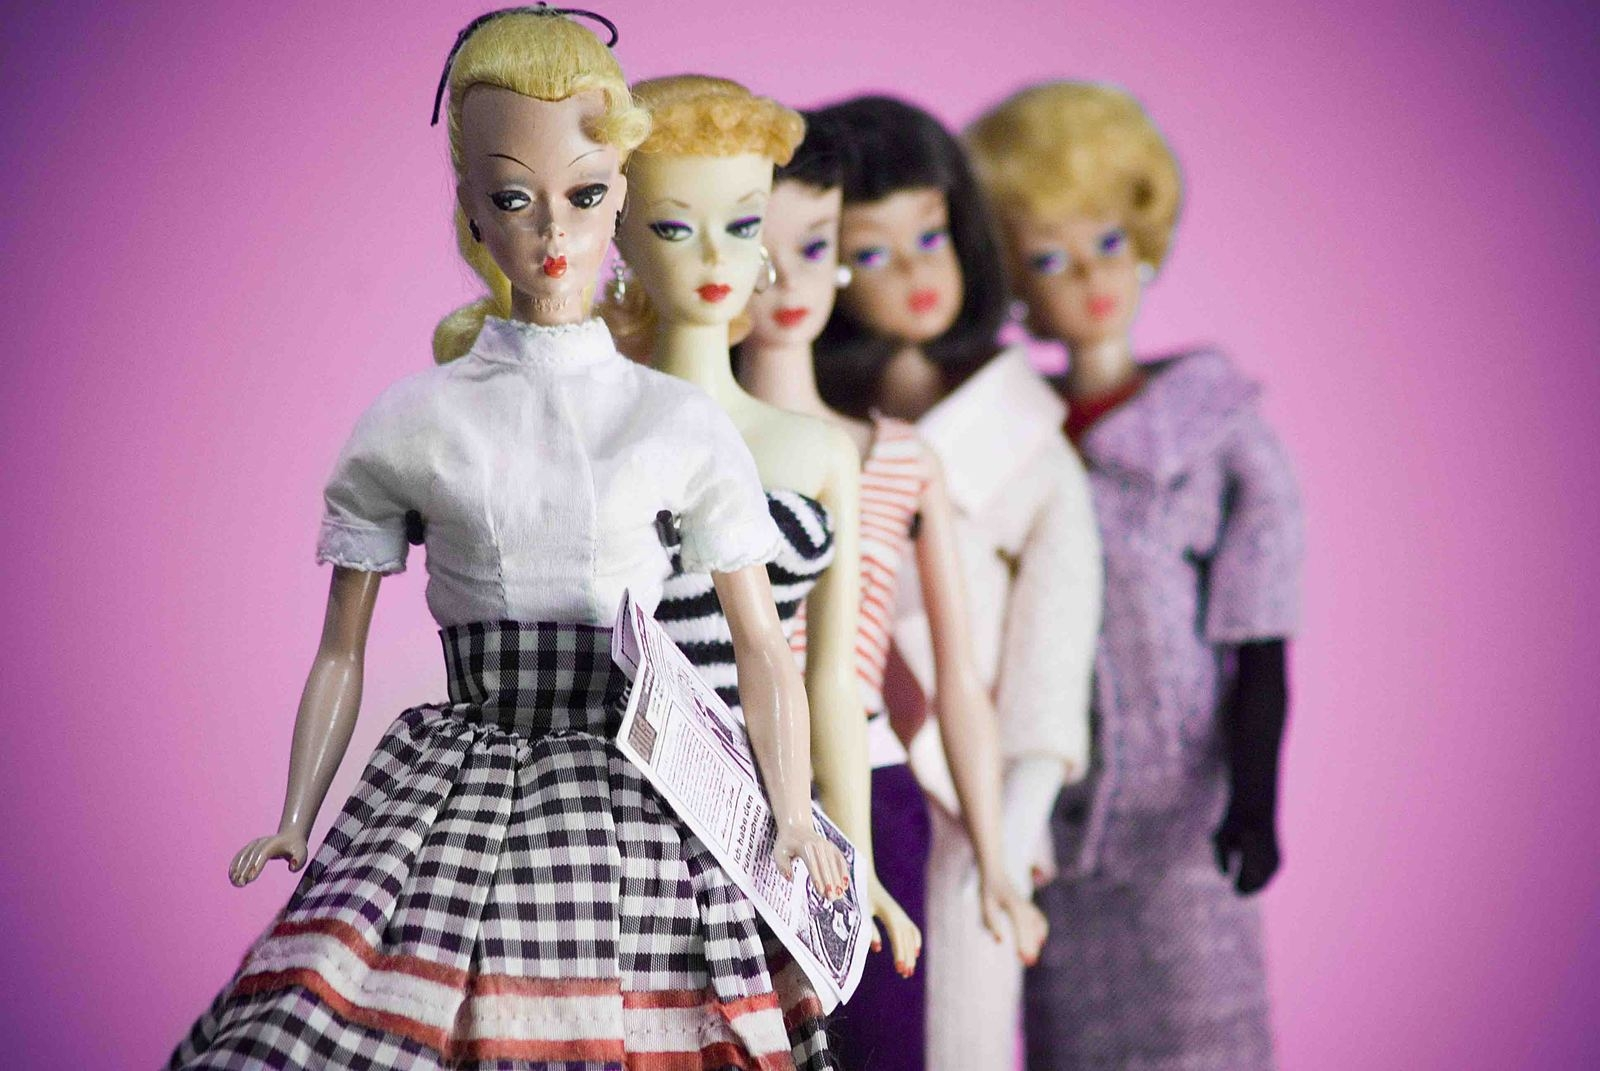 Barbie Collection image